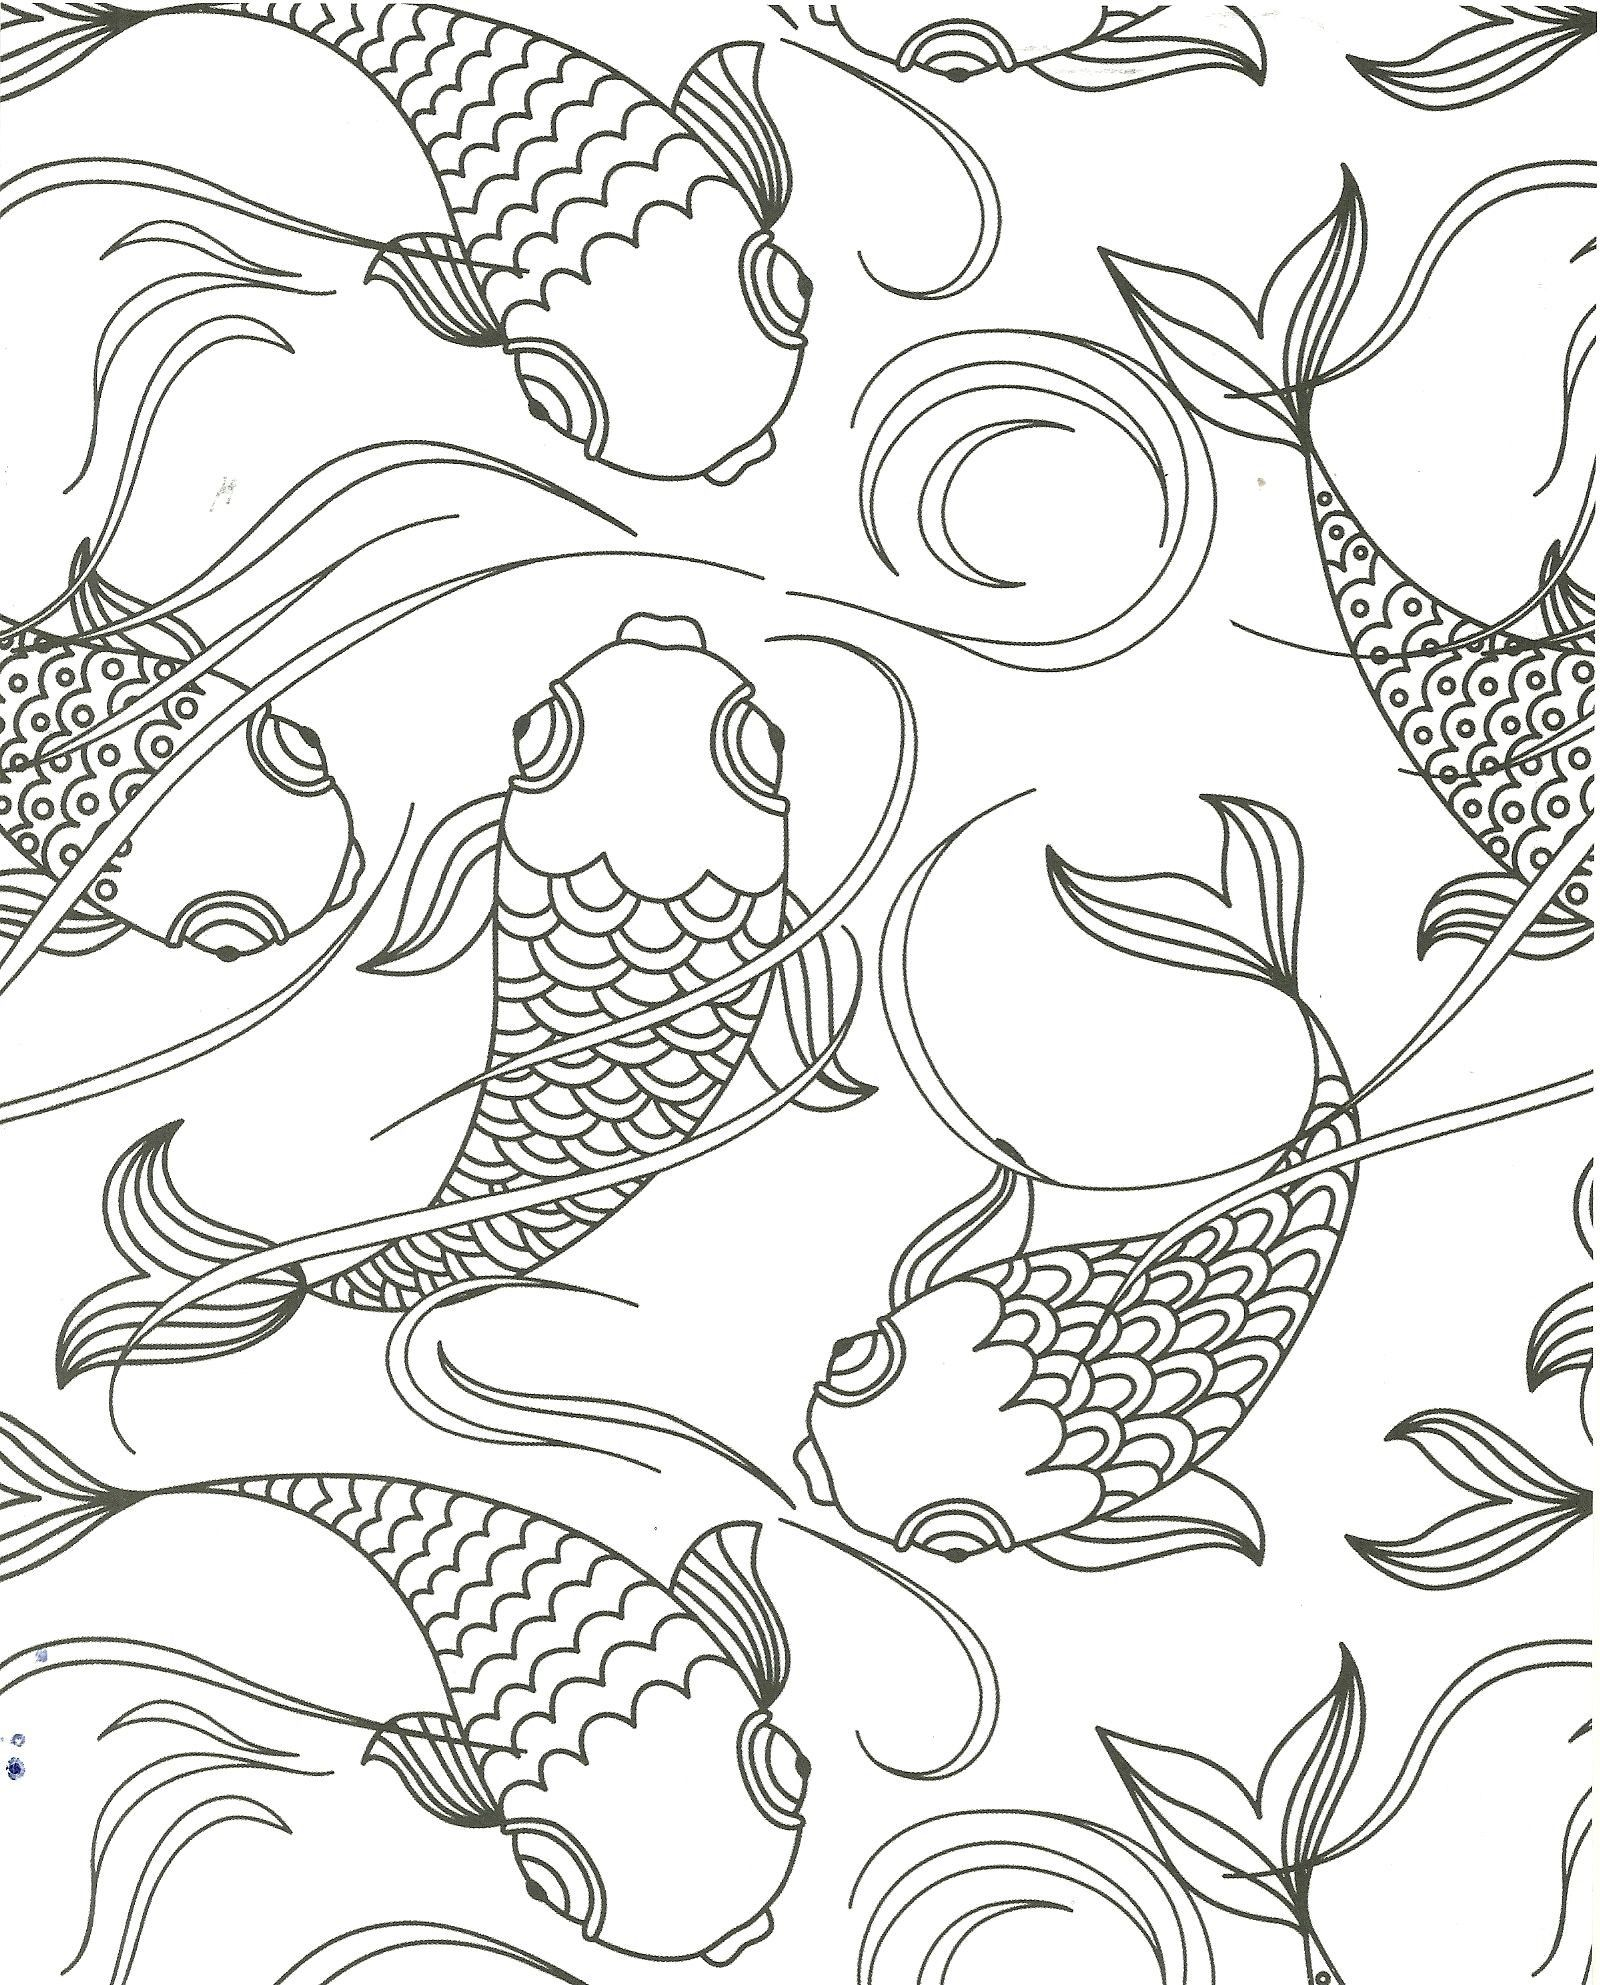 Koi Fish Coloring Page Youngandtae Com In 2020 Fish Coloring Page Animal Coloring Pages Coloring Pages